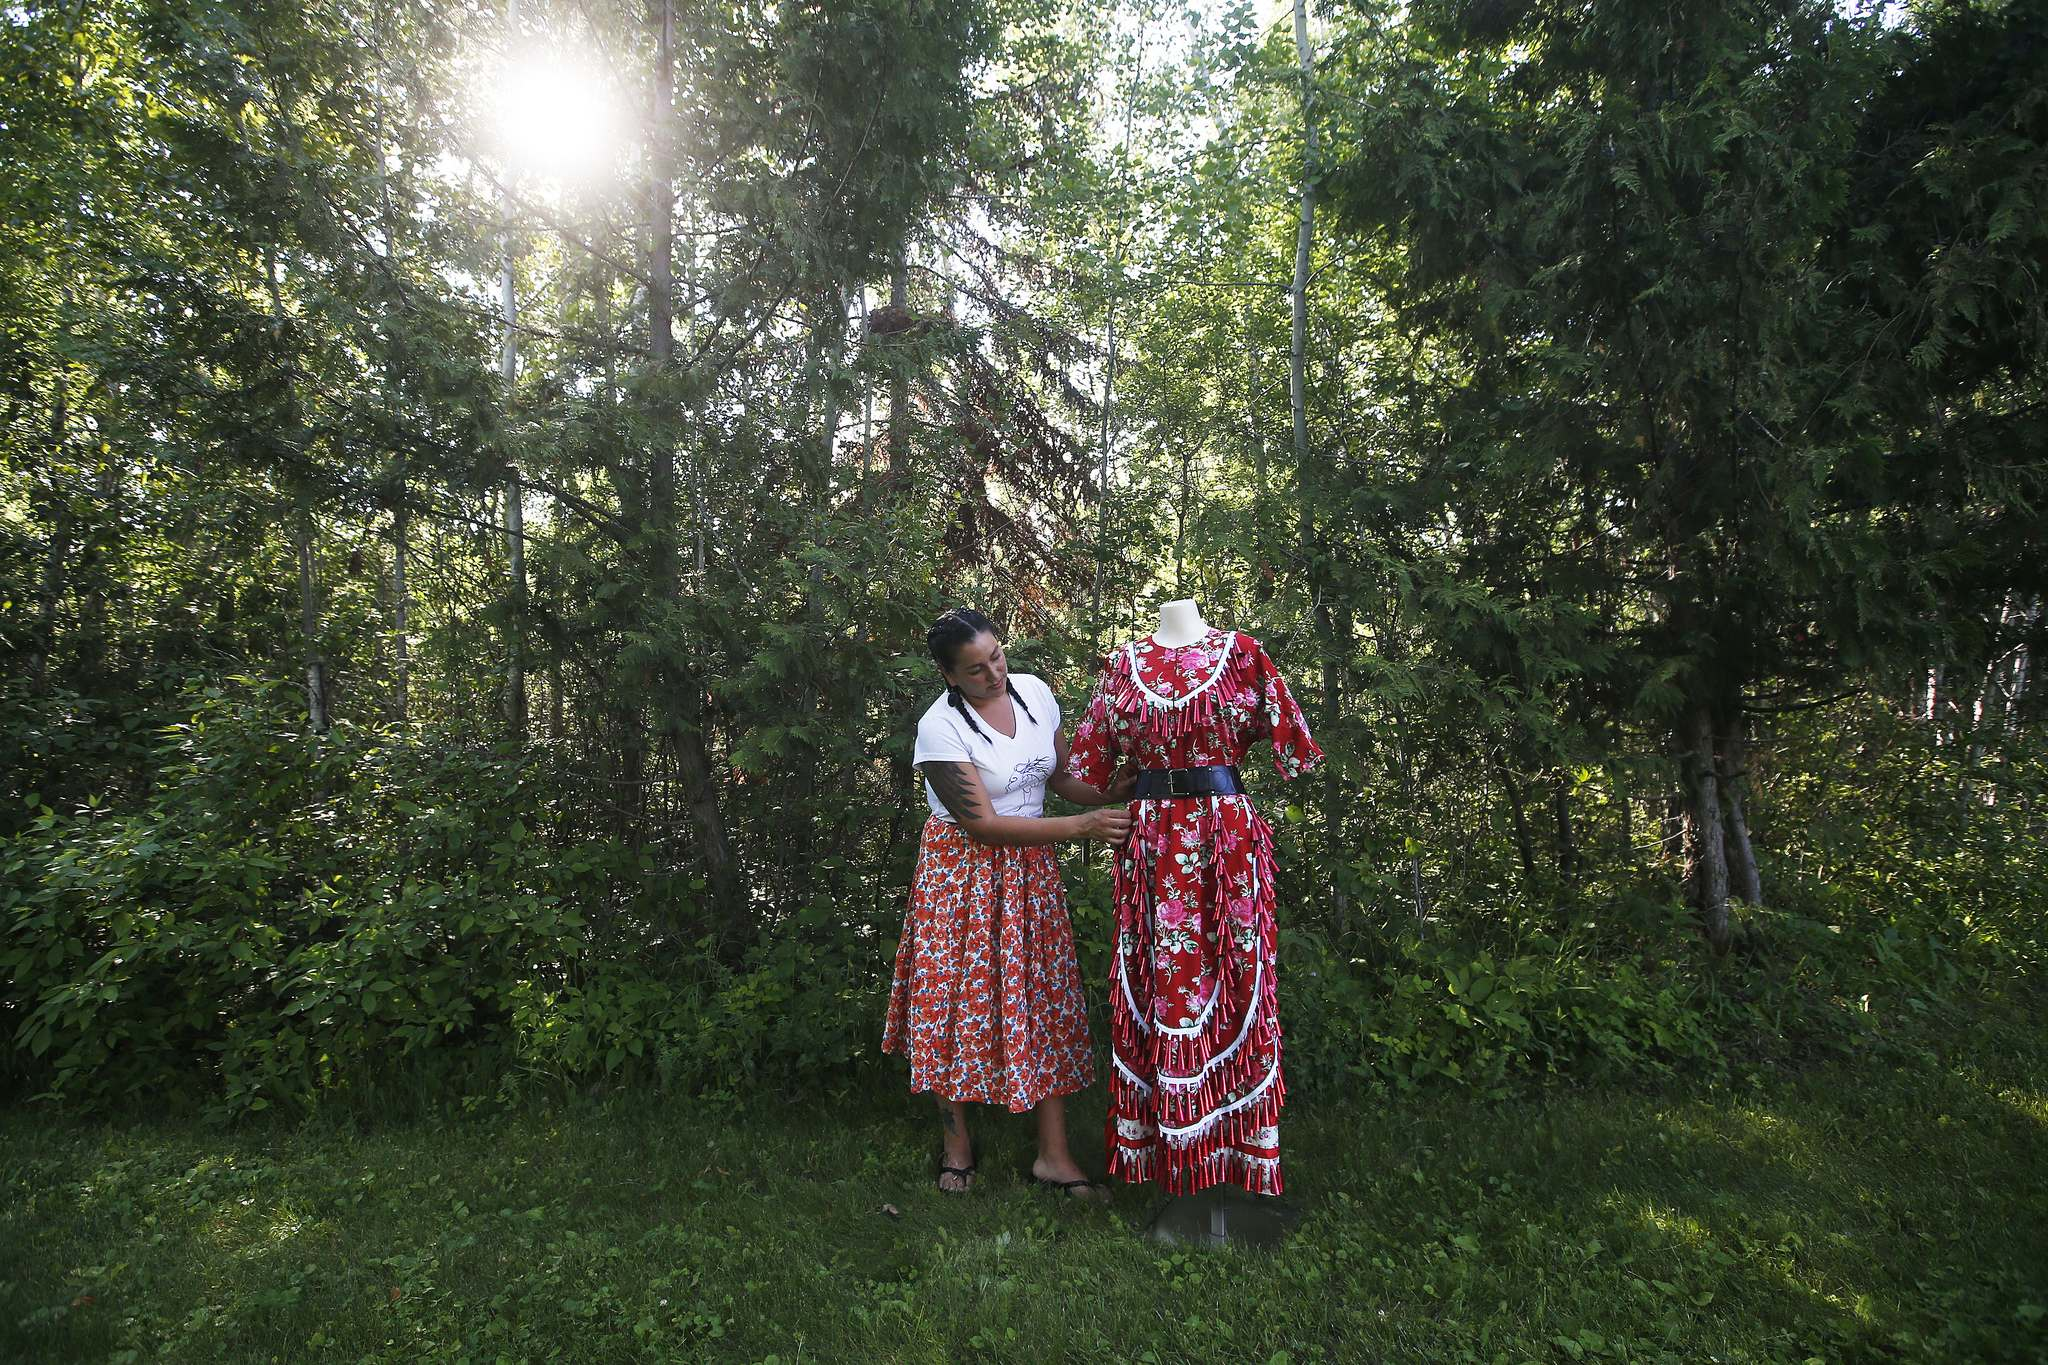 Wendy Sinclair of Pretty Windy Designs creates ponchos, blankets, skirts, vests and jackets, using fabrics and designs that are part of her culture. (John Woods / Winnipeg Free Press)</p></p>